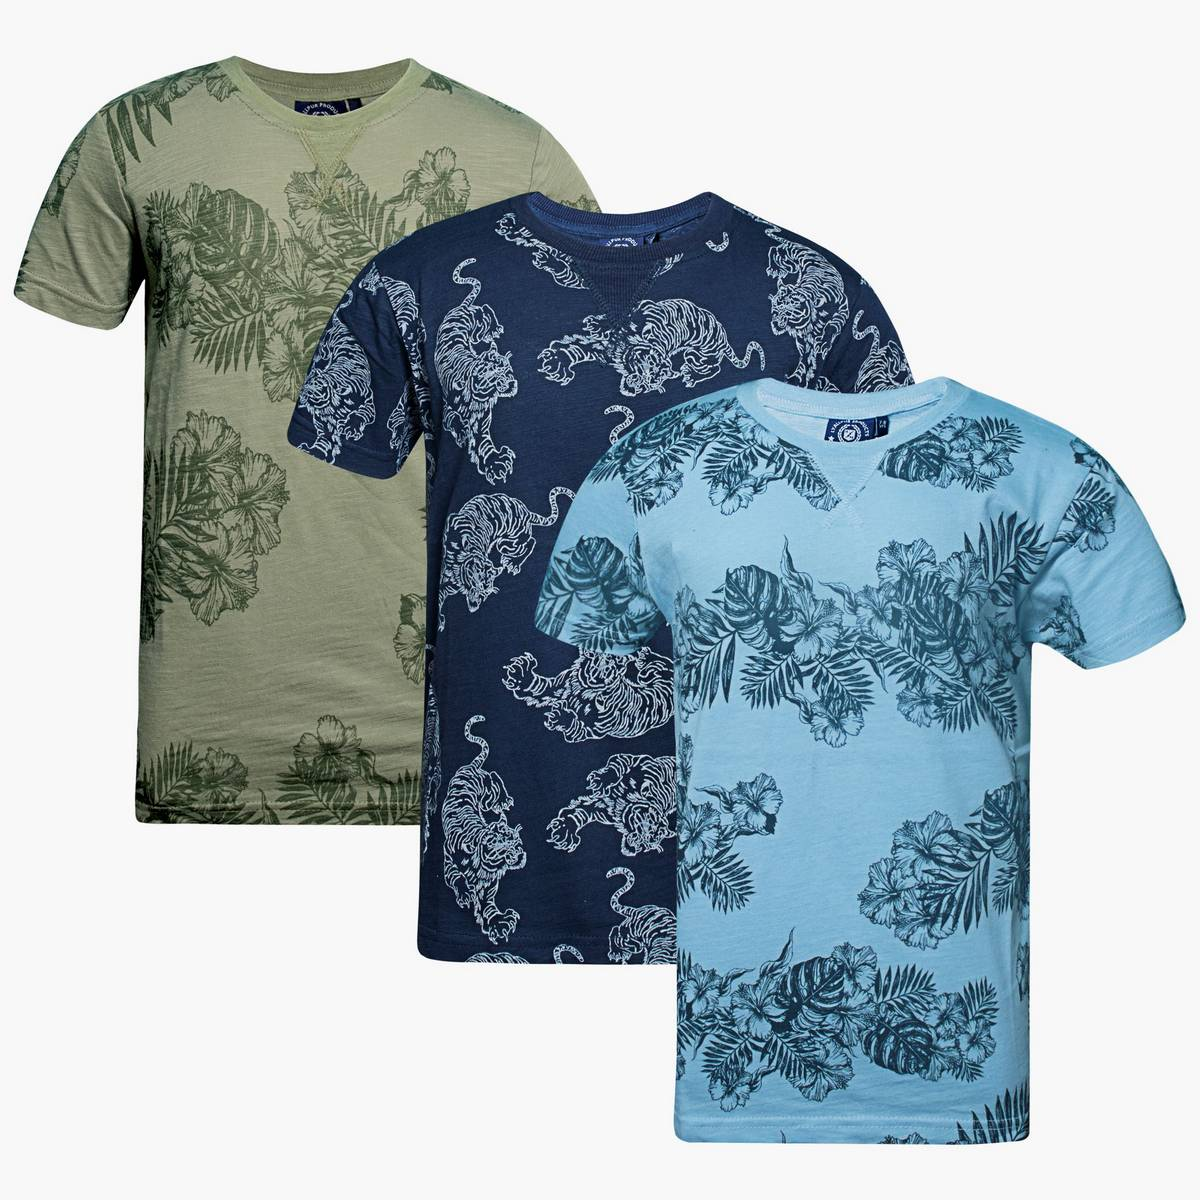 T shirts for boys Kids Pack Of 3 with all over Floral and Loin Printing  Silver Sage Angle fall Blue Fashion Colour  Pure Cotton  Casual Wear Formal Wear Sports Wear export quality Trendy shirts Size Range 7-13 Years